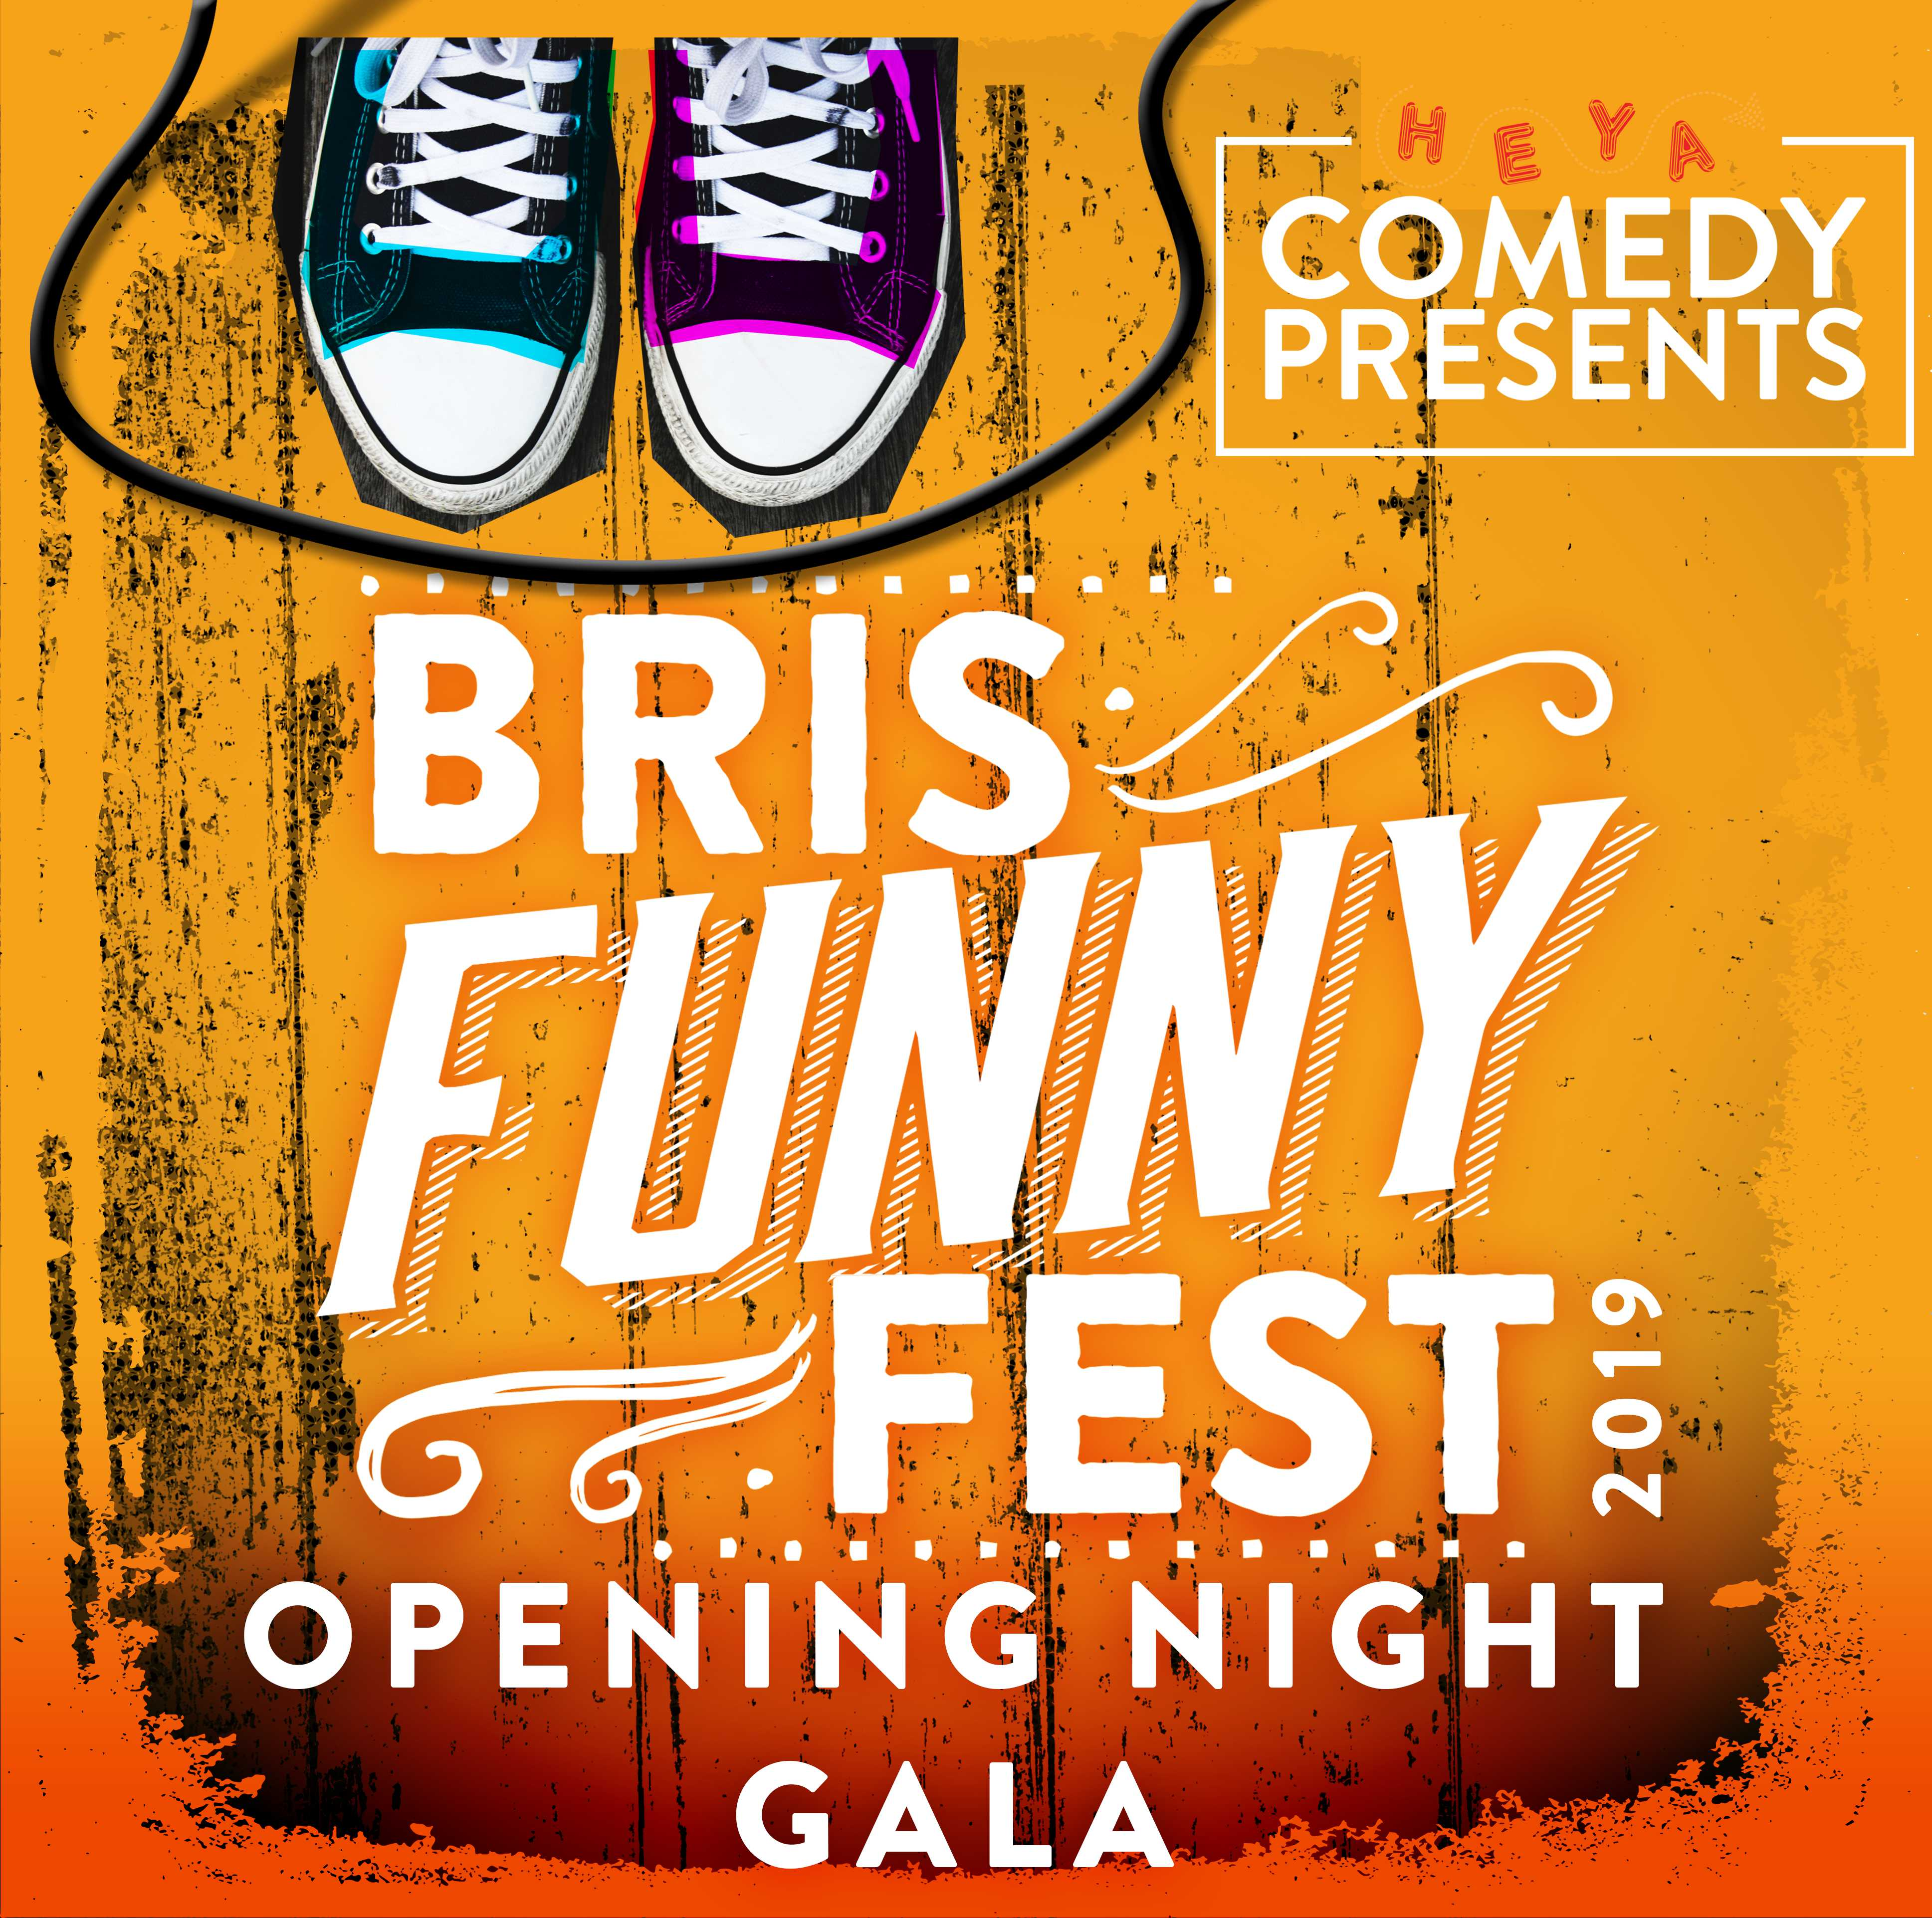 Bris Funny Fest Opening Night Gala!, performed by